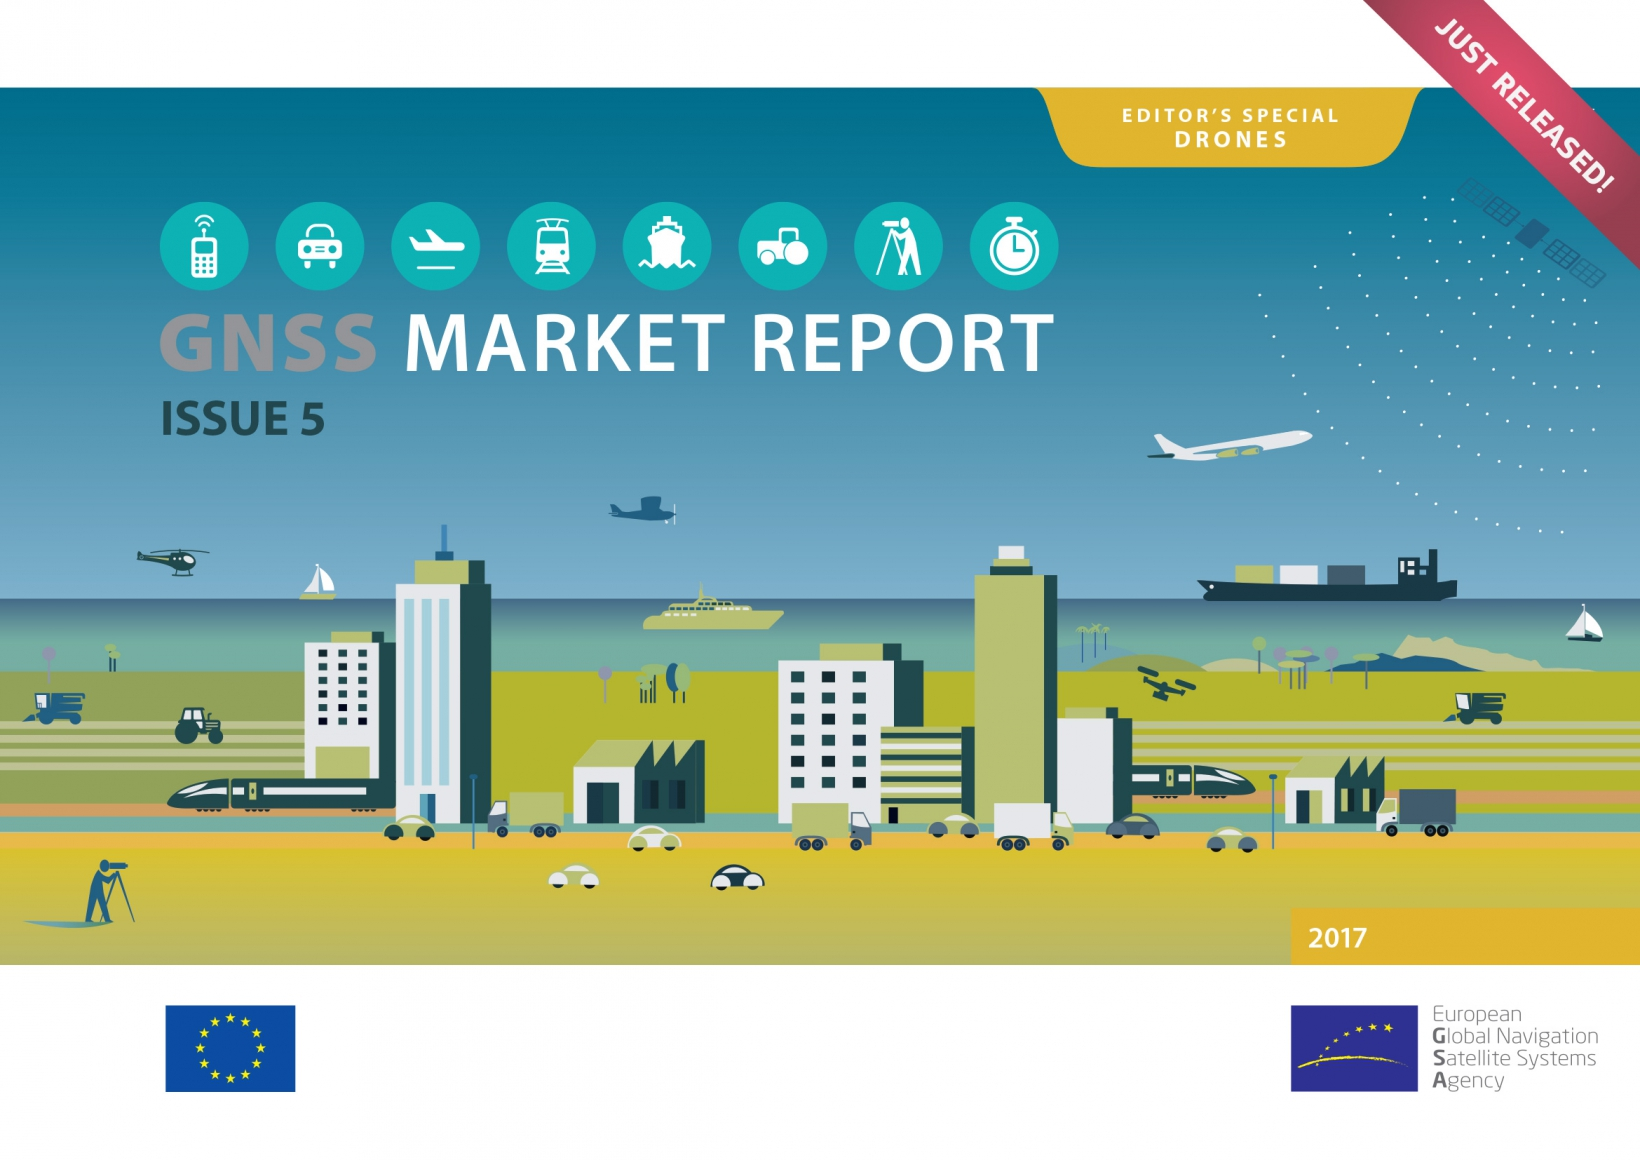 GNSS Market Report 2017 - just released.